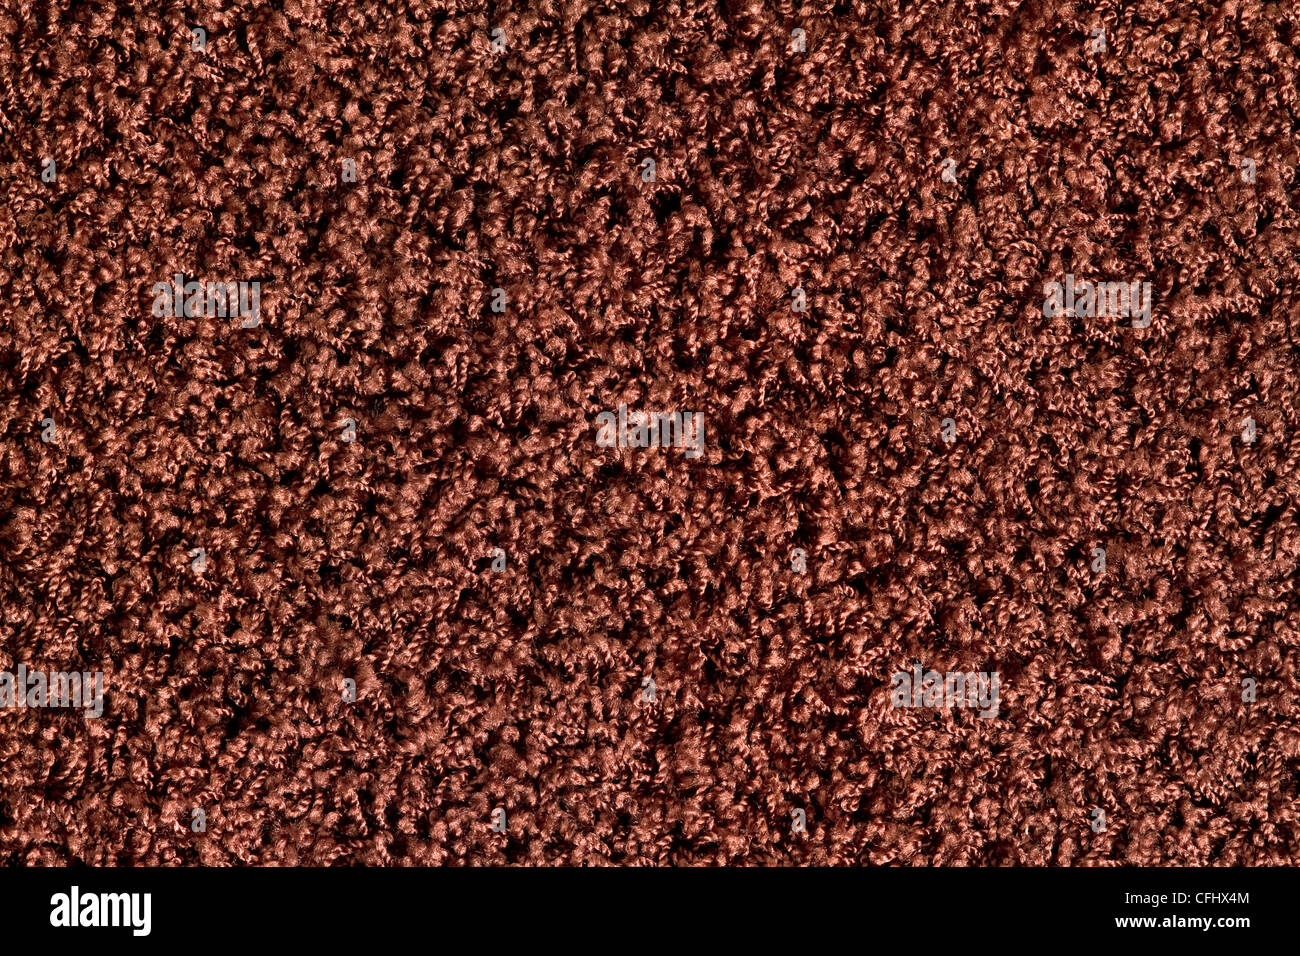 texture of a colored carpet with long brown pile. - Stock Image